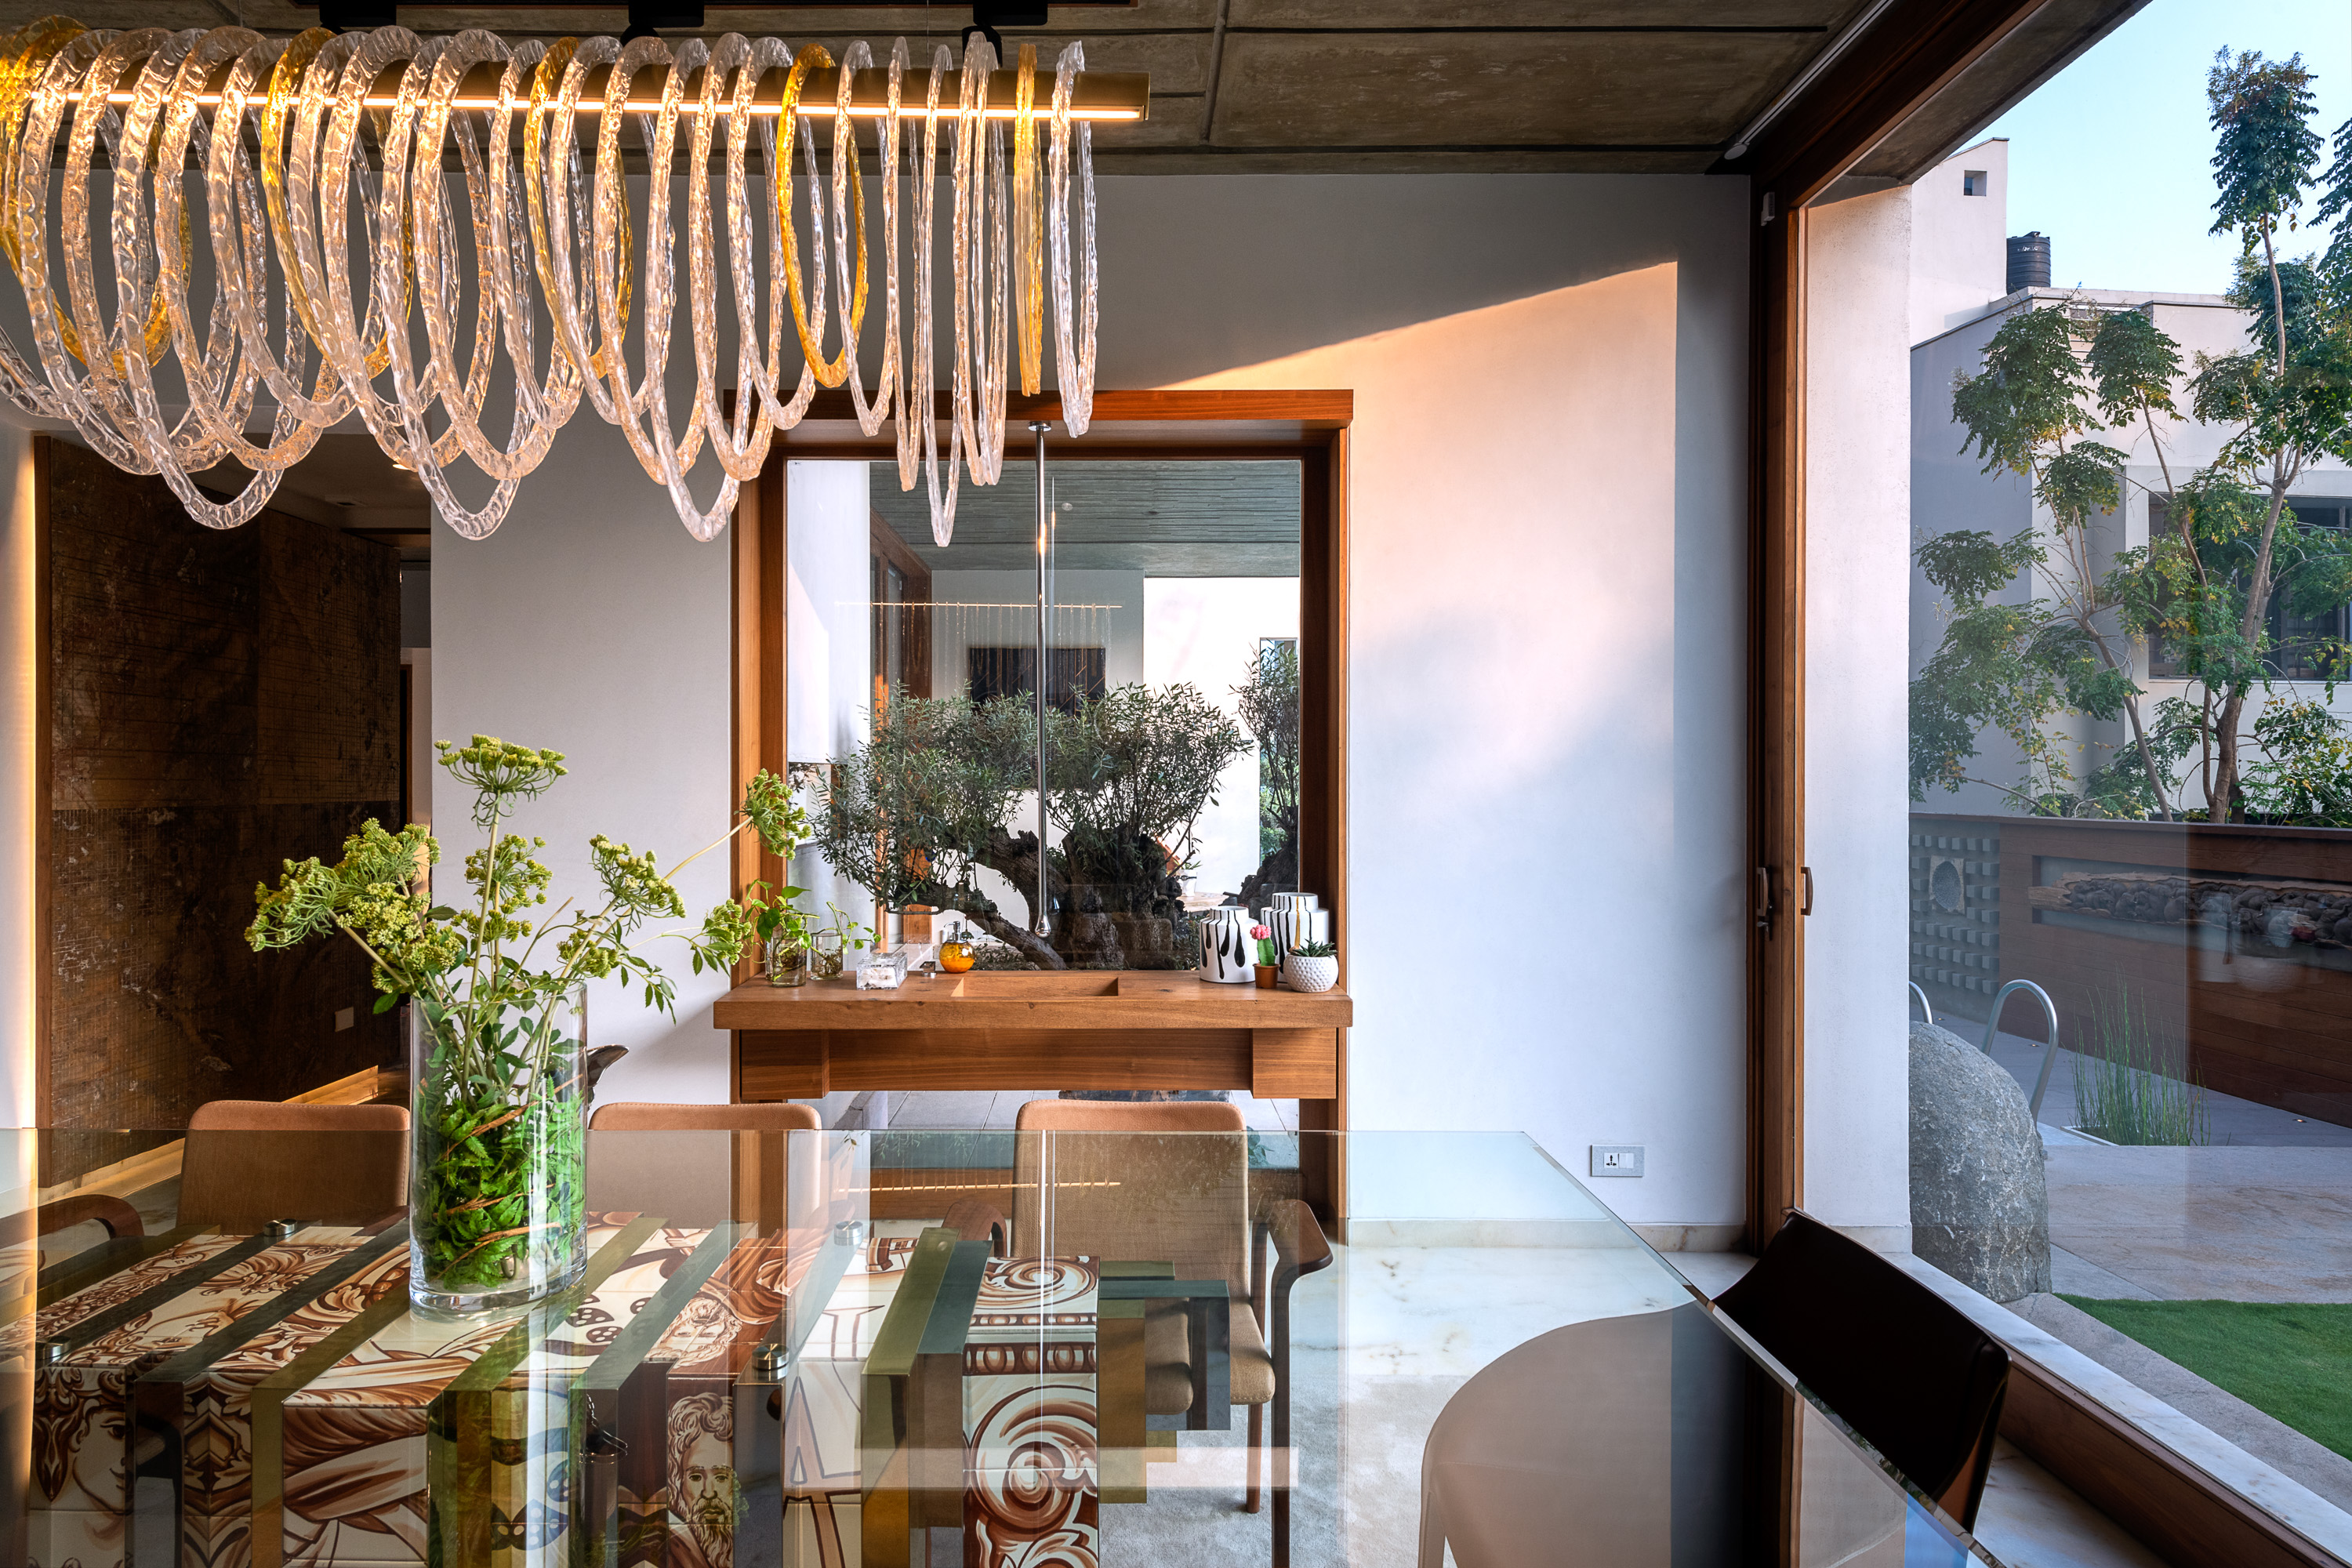 Sustainability Meets Luxury In This Private Residence by NA Architects (3) na architects Sustainability Meets Luxury In This Private Residence by NA Architects Sustainability Meets Luxury In This Private Residence by NA Architects 3